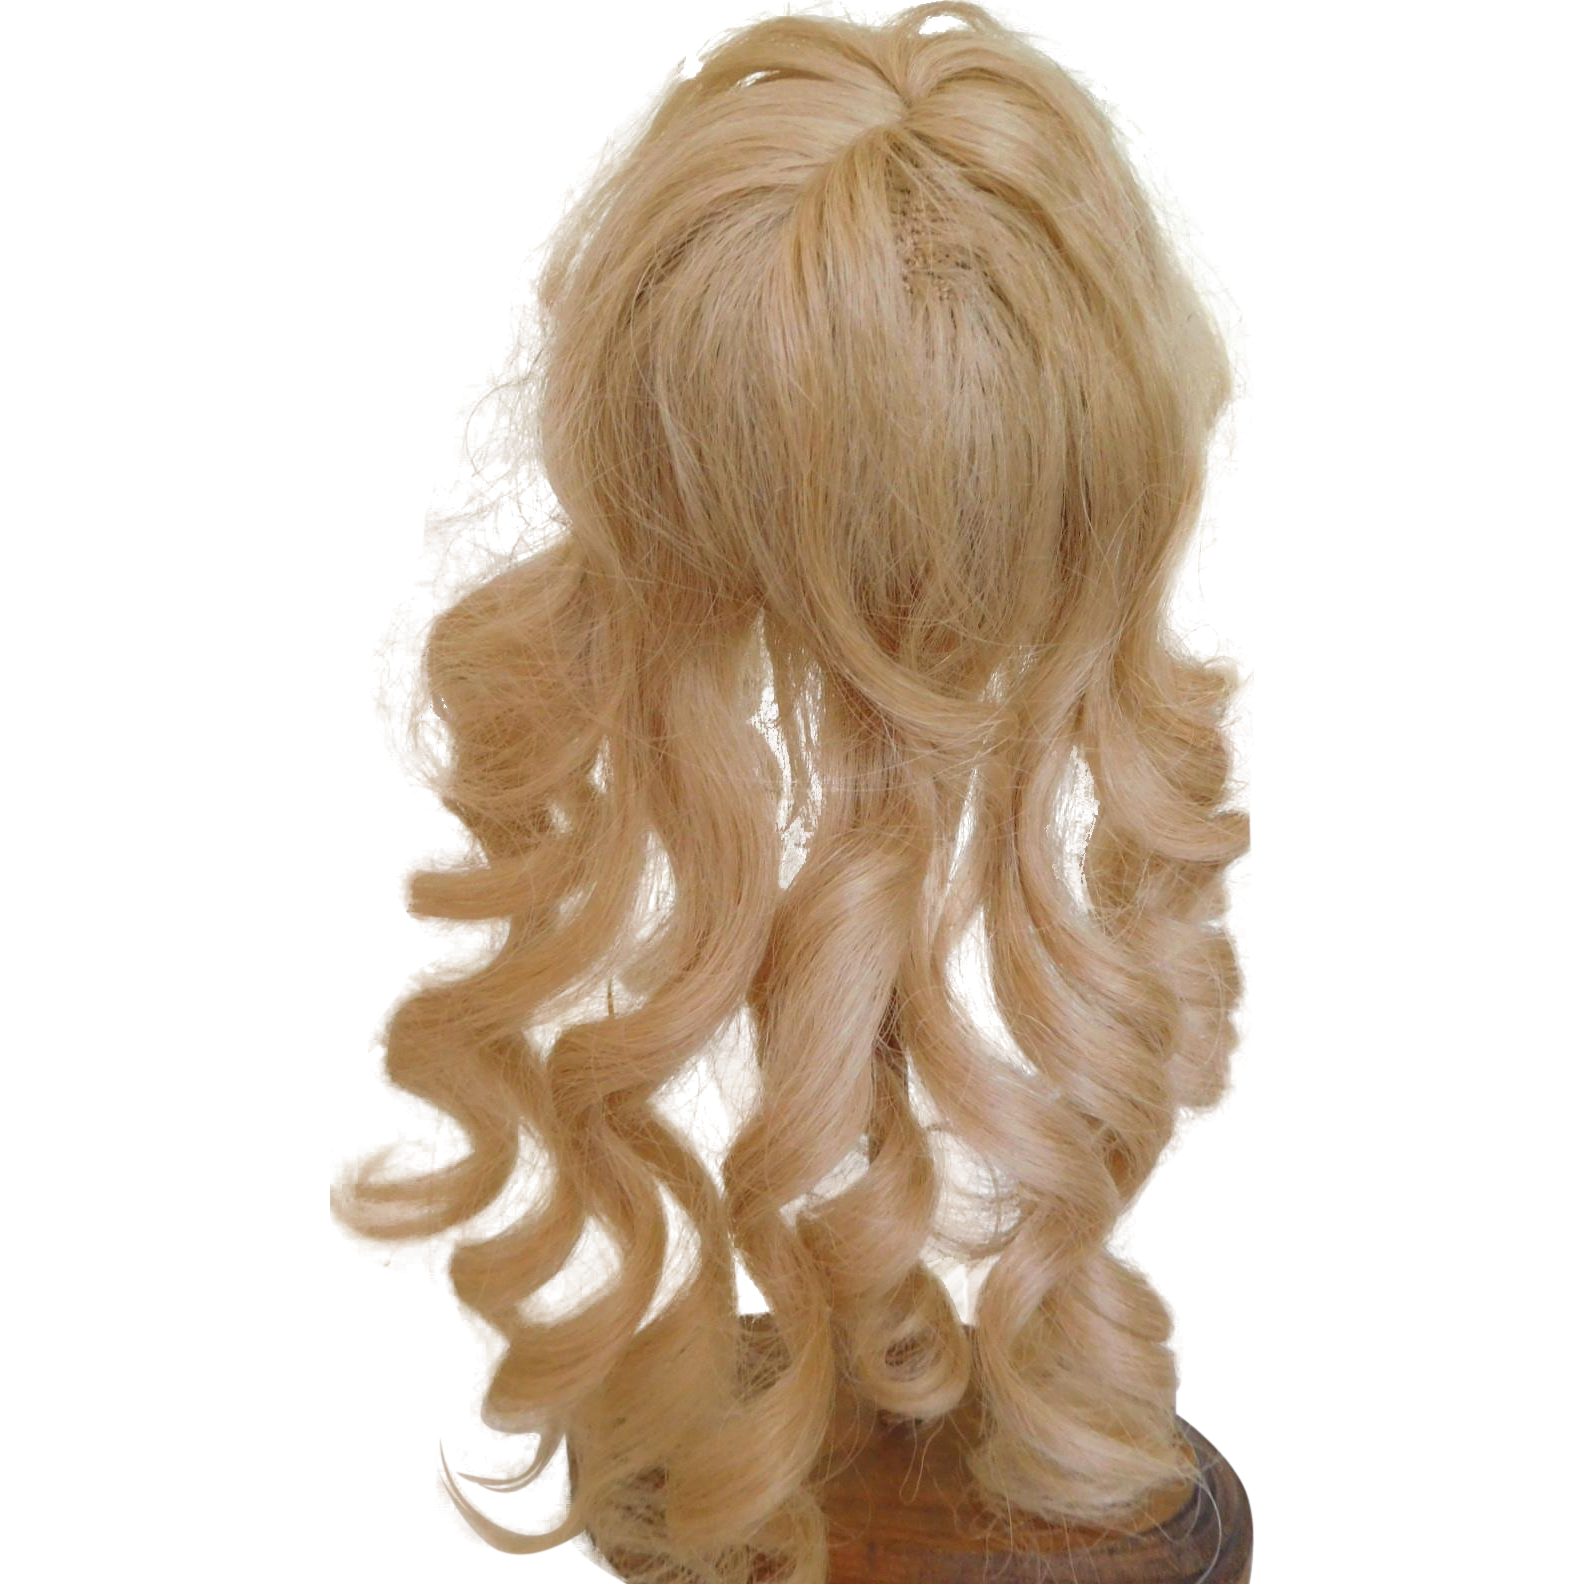 French Blonde Human Hair Wig Size 9 Long Curls w/ Label